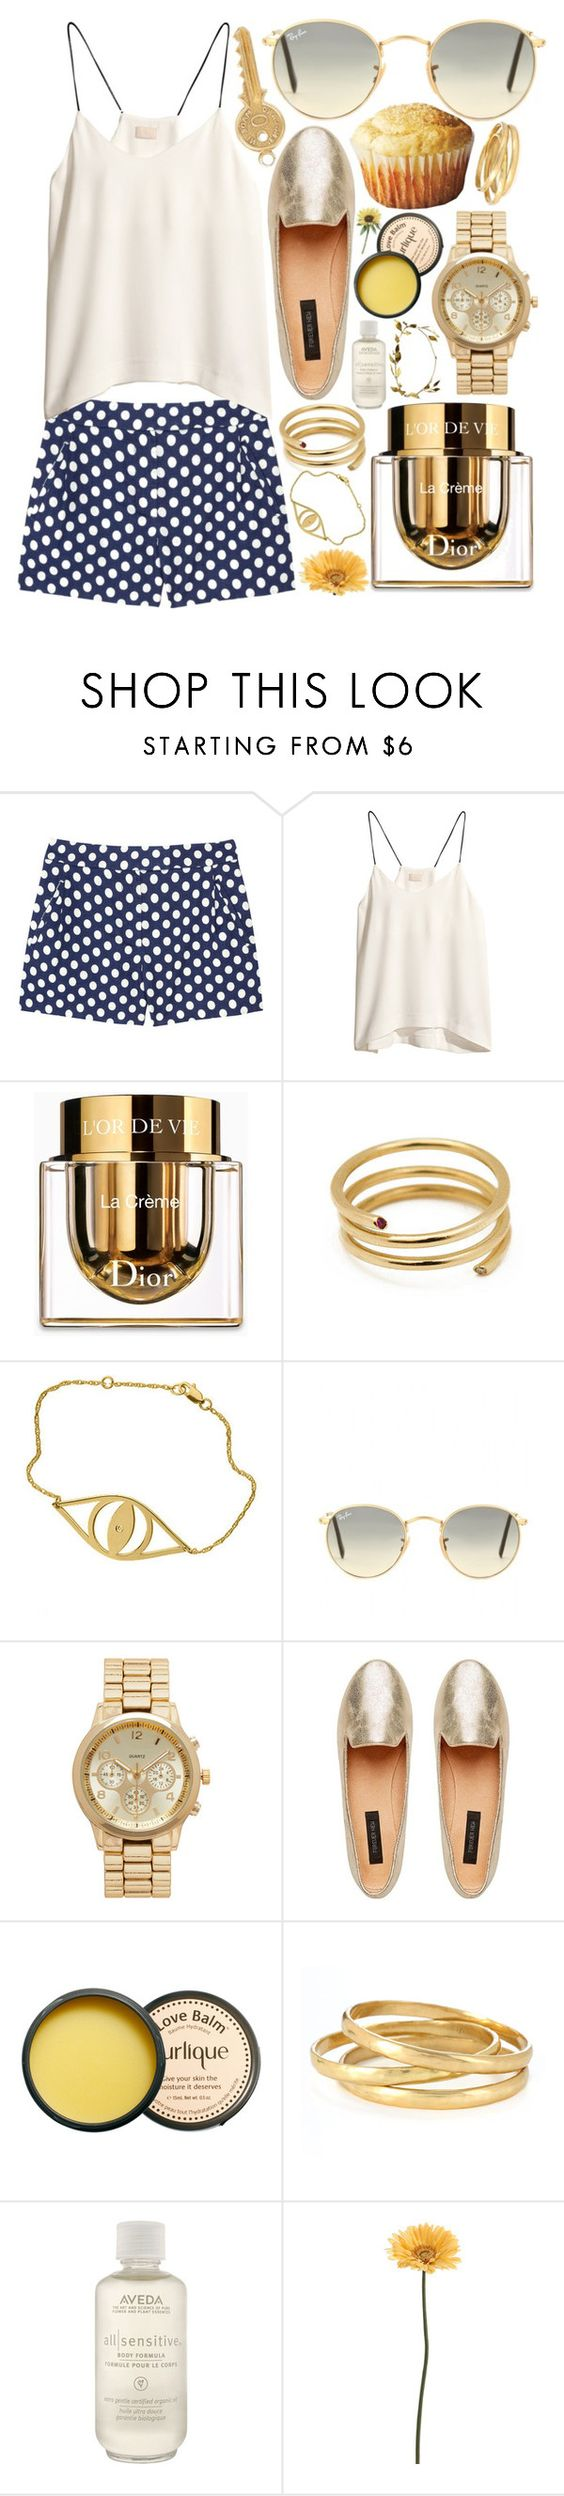 """""""gold coasts"""" by supercoookie ❤ liked on Polyvore featuring J.Crew, H&M, Christian Dior, Ella Poe, Jennifer Zeuner, Ray-Ban, Forever New, Jurlique, Kenneth Cole and Aveda"""